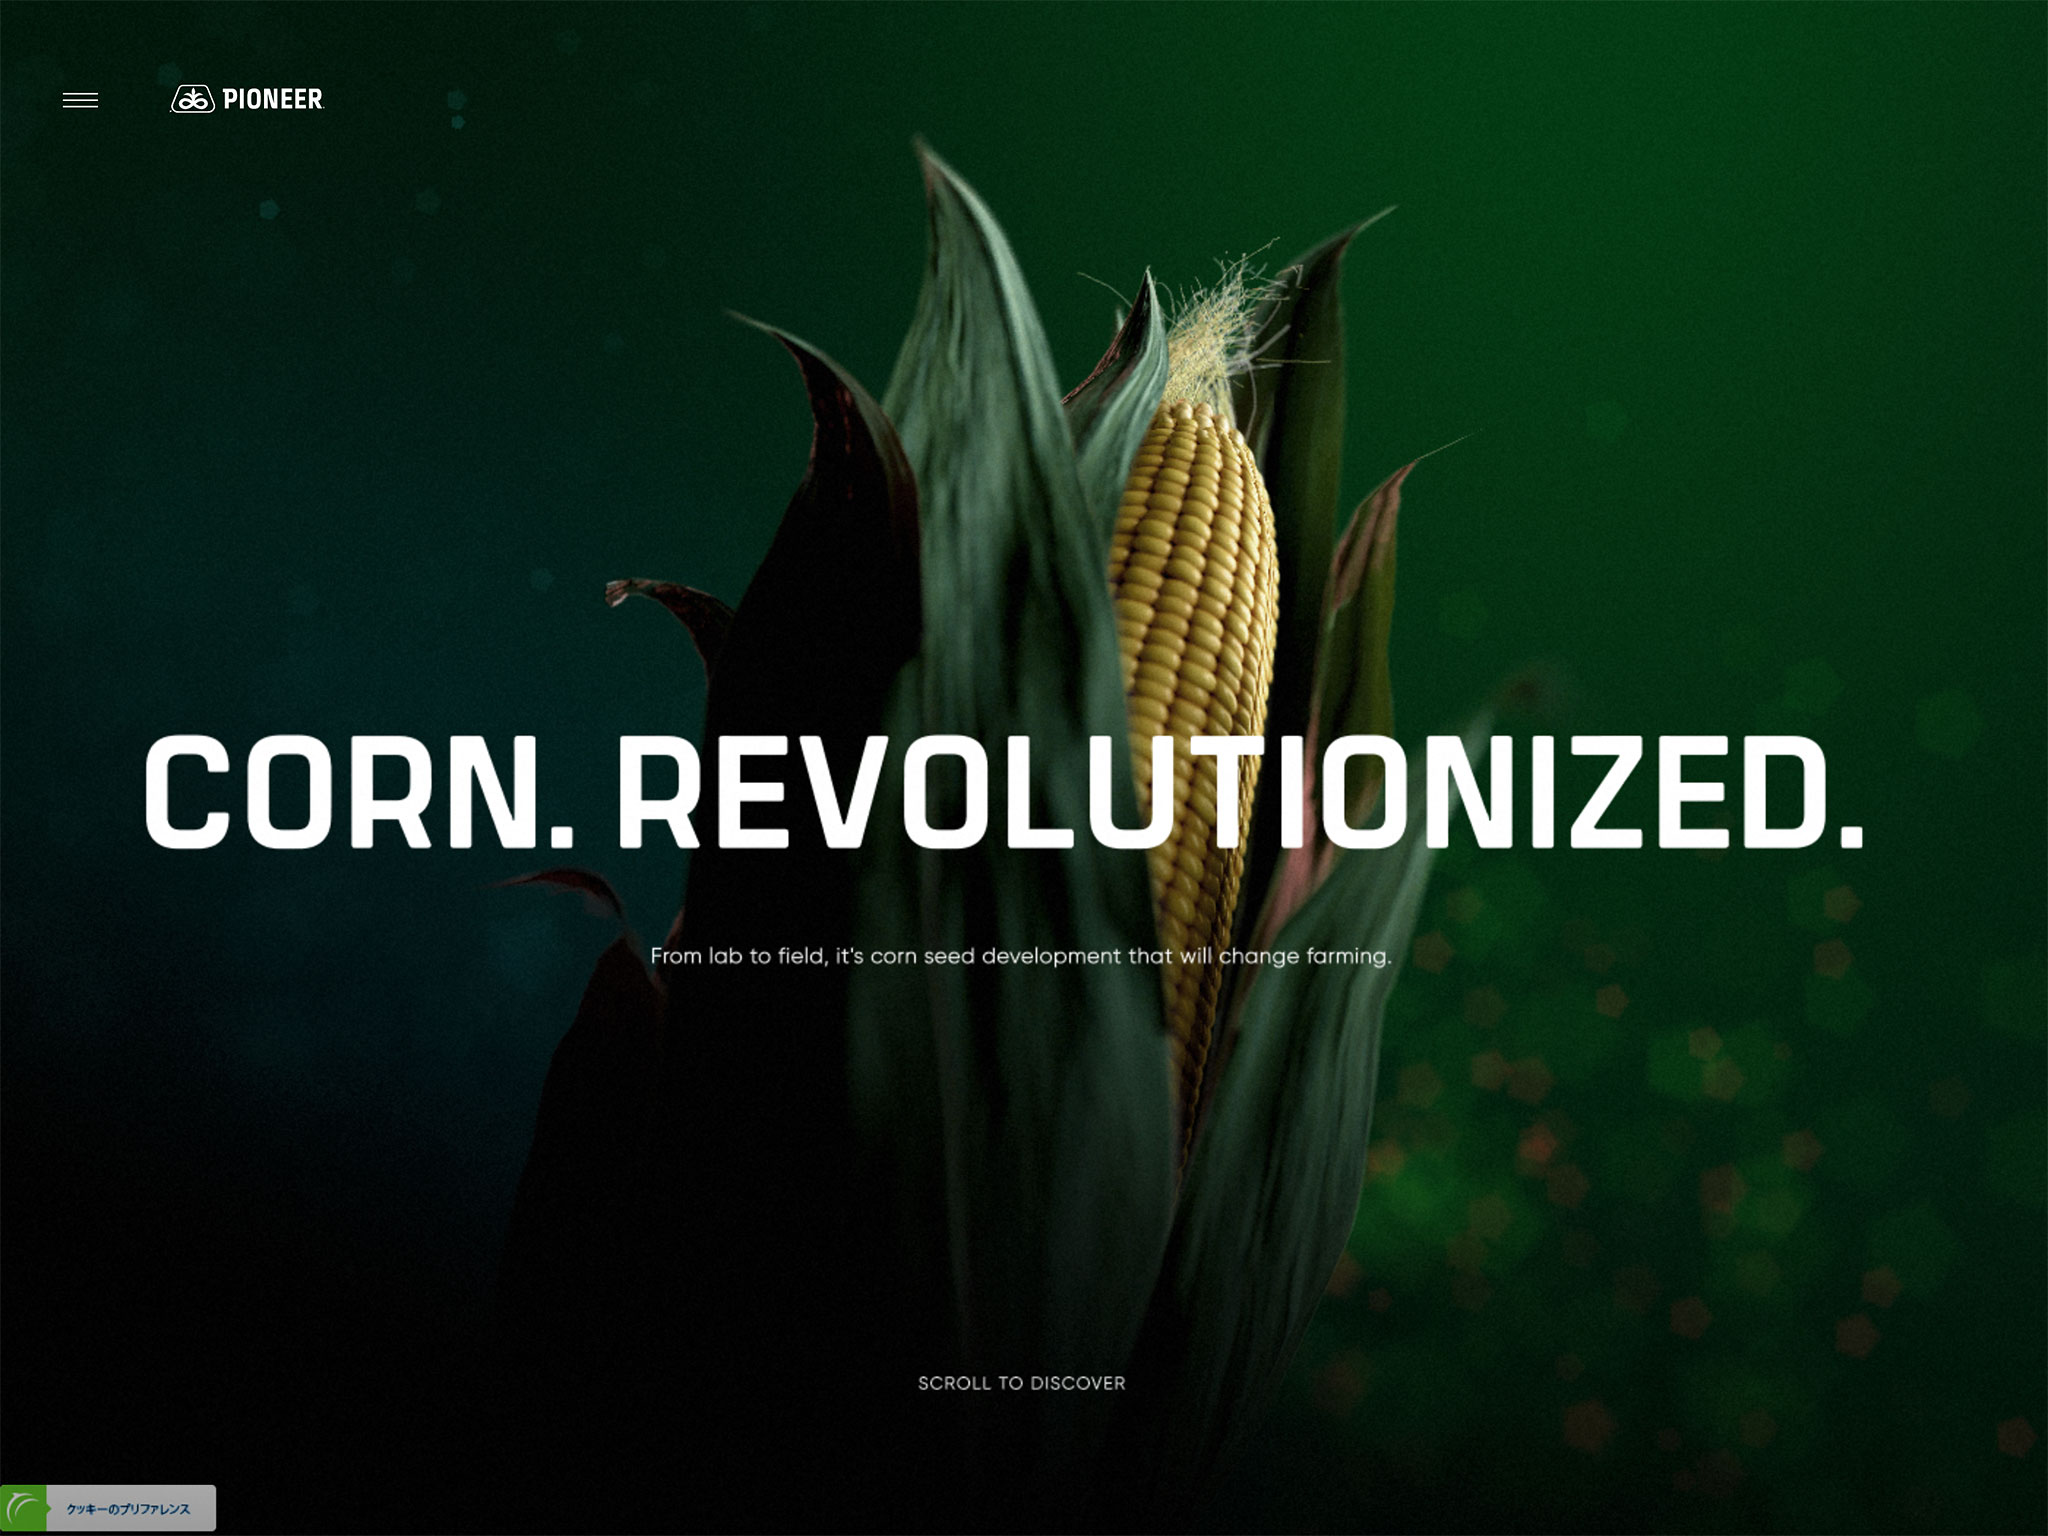 Pioneer – Corn. Revolutionized.